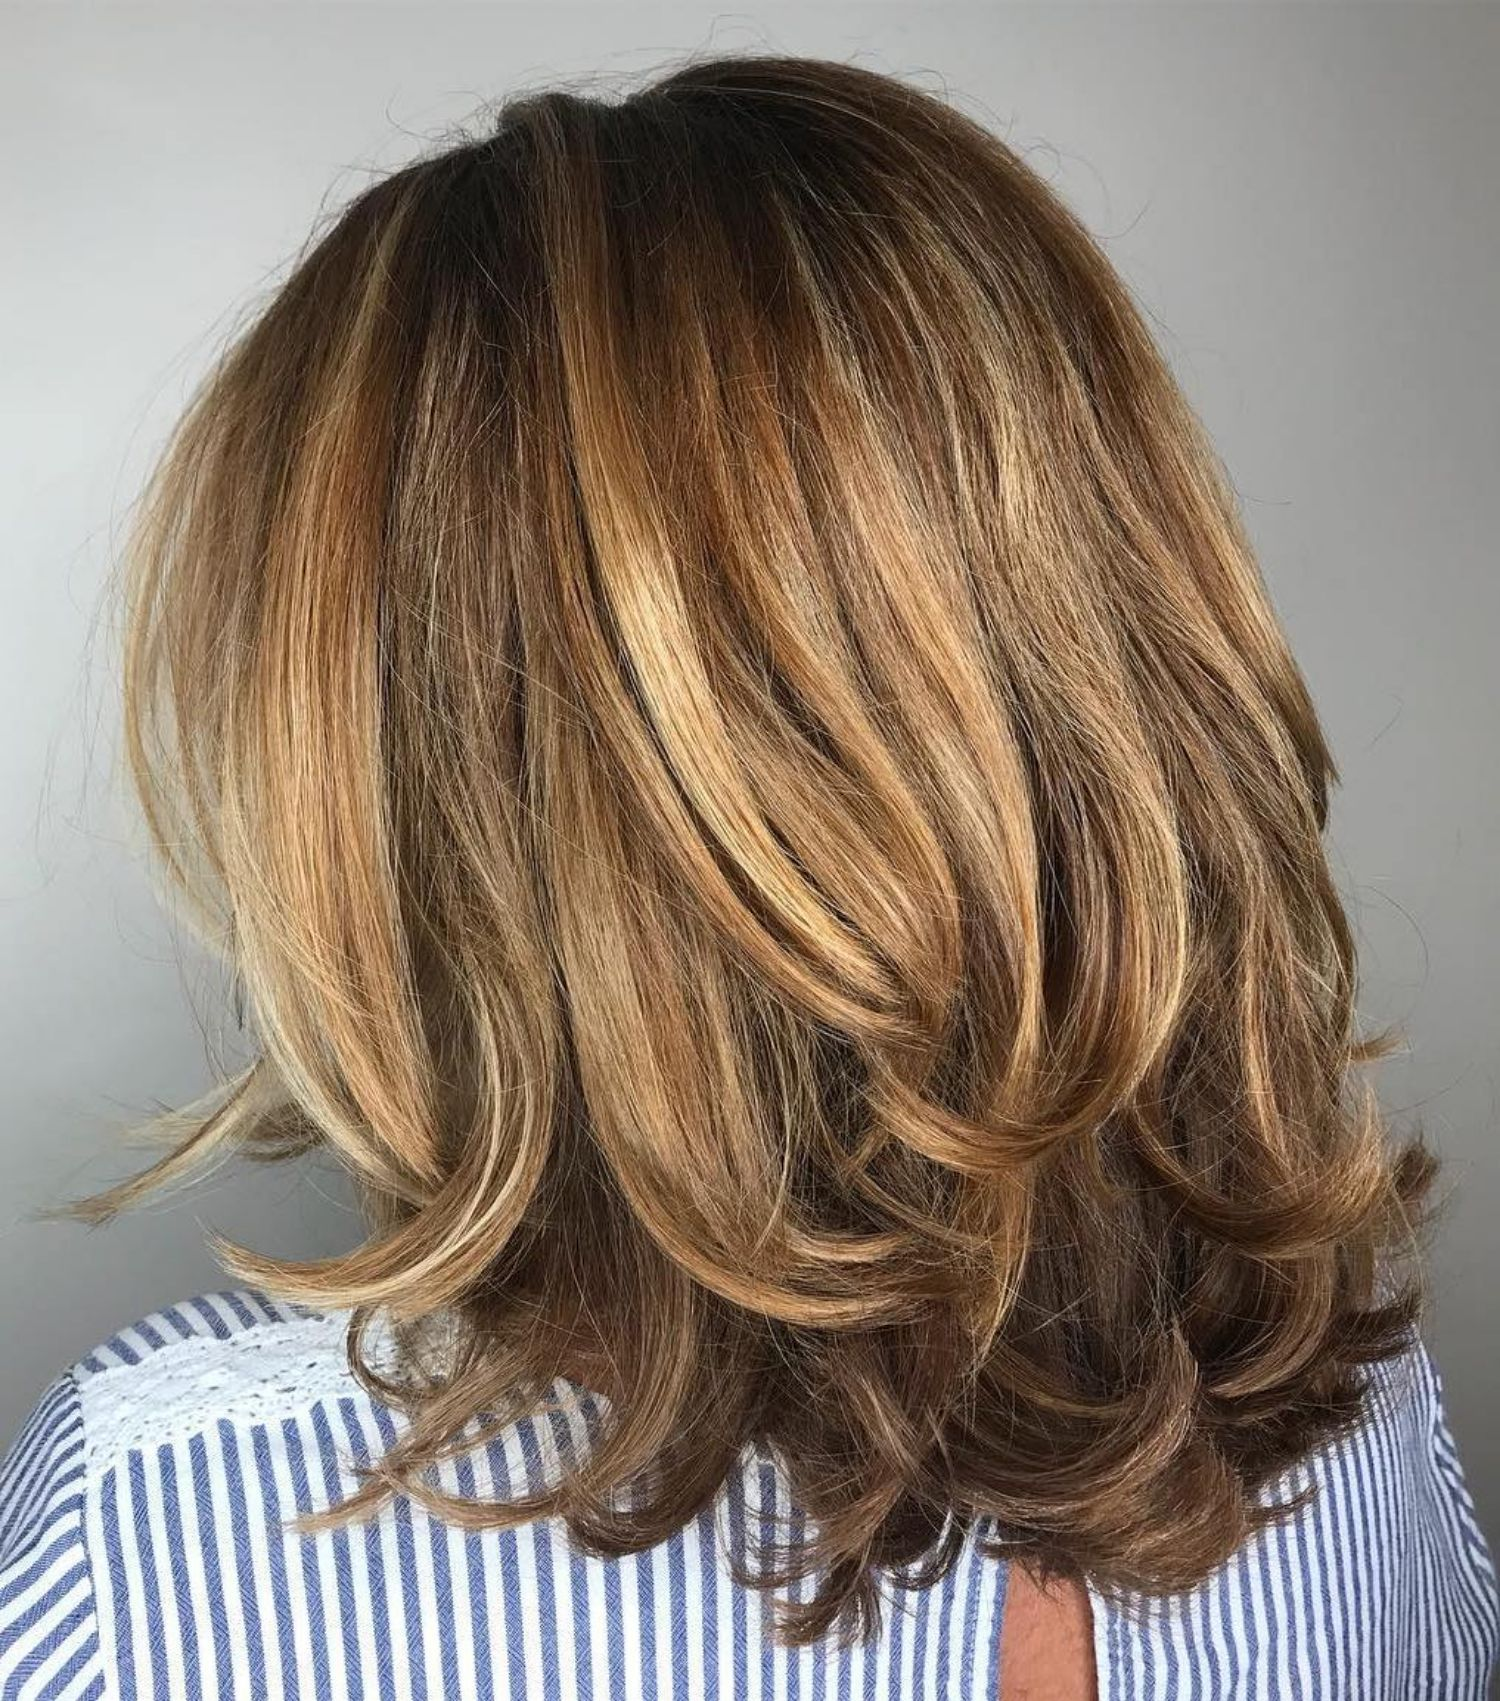 17+ Layered mid length haircut ideas in 2021